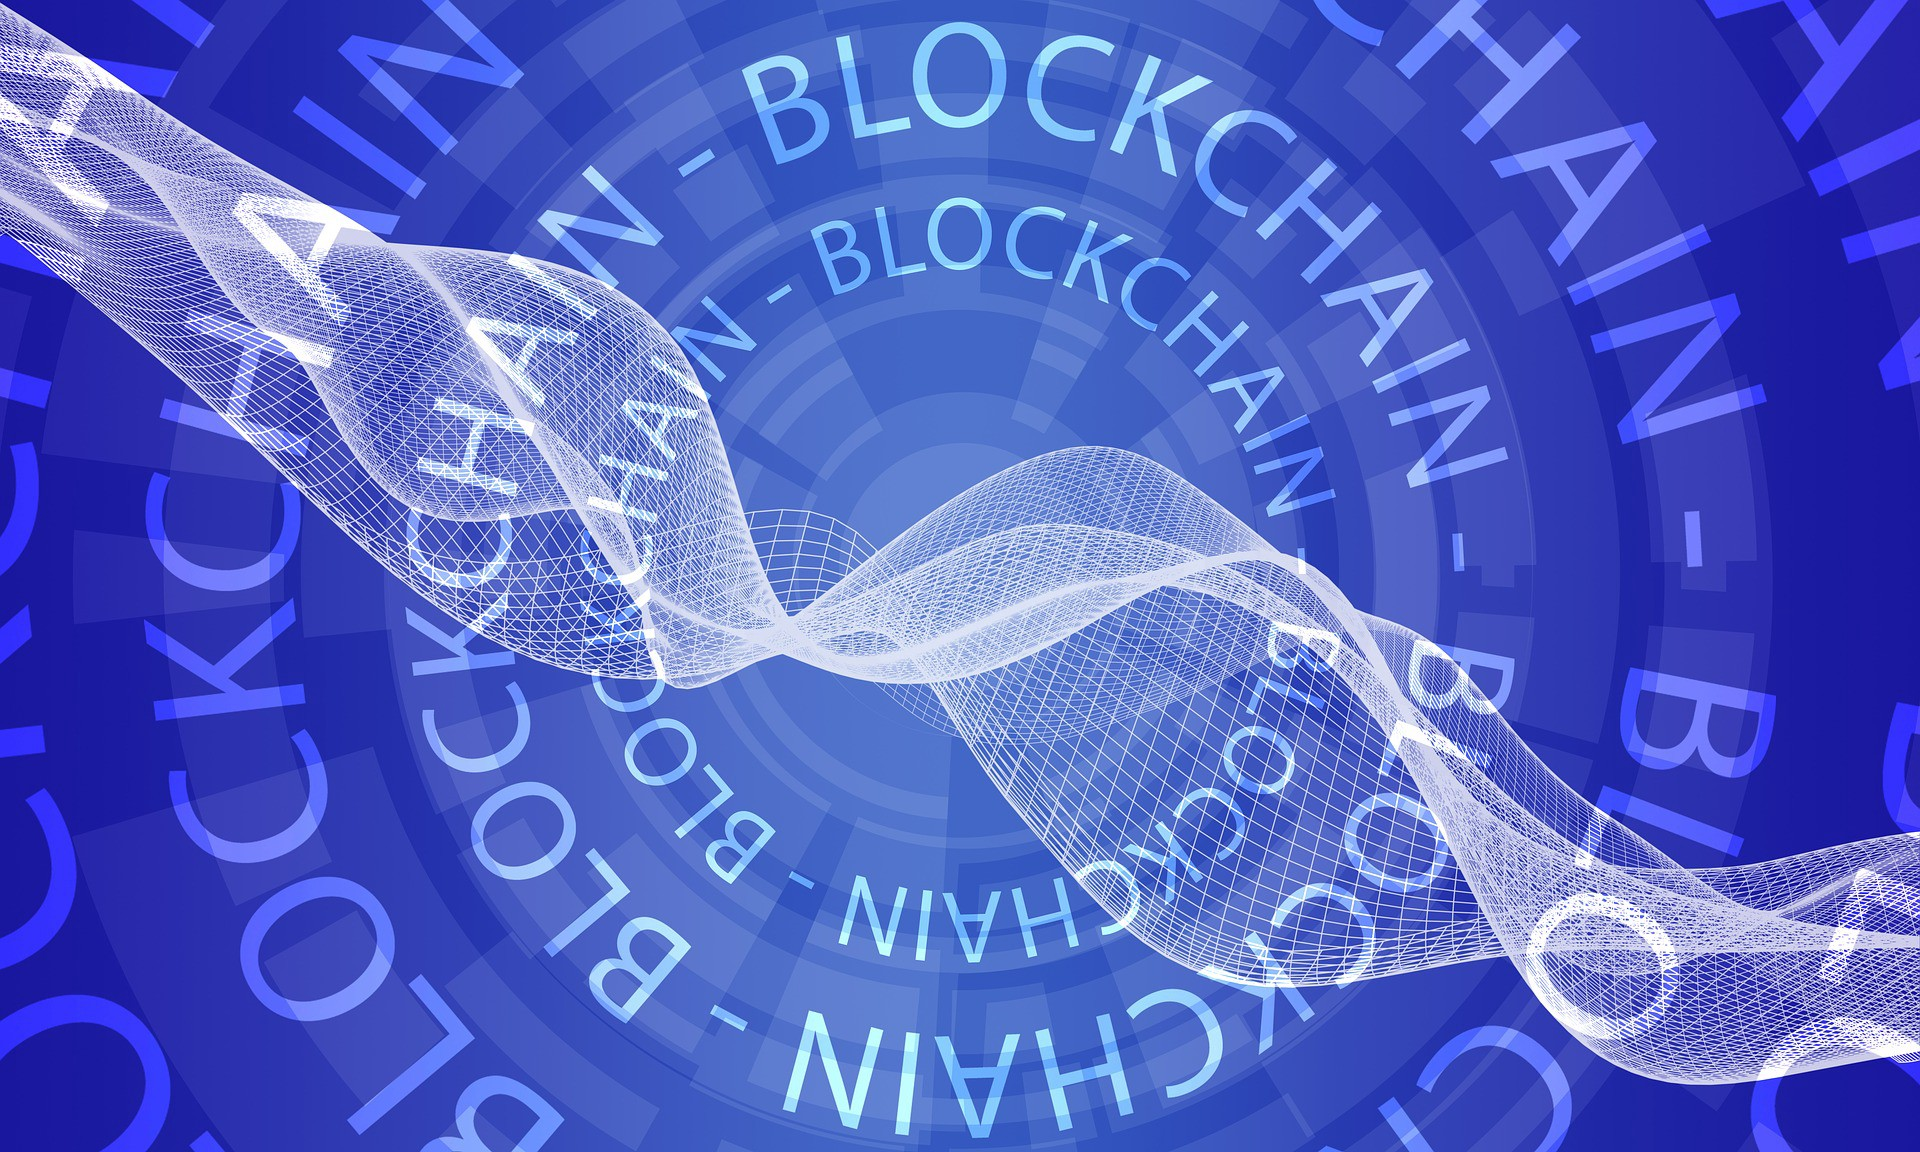 /blockchain-workshops-the-complete-list-for-2018-bbb526cd3e1b feature image